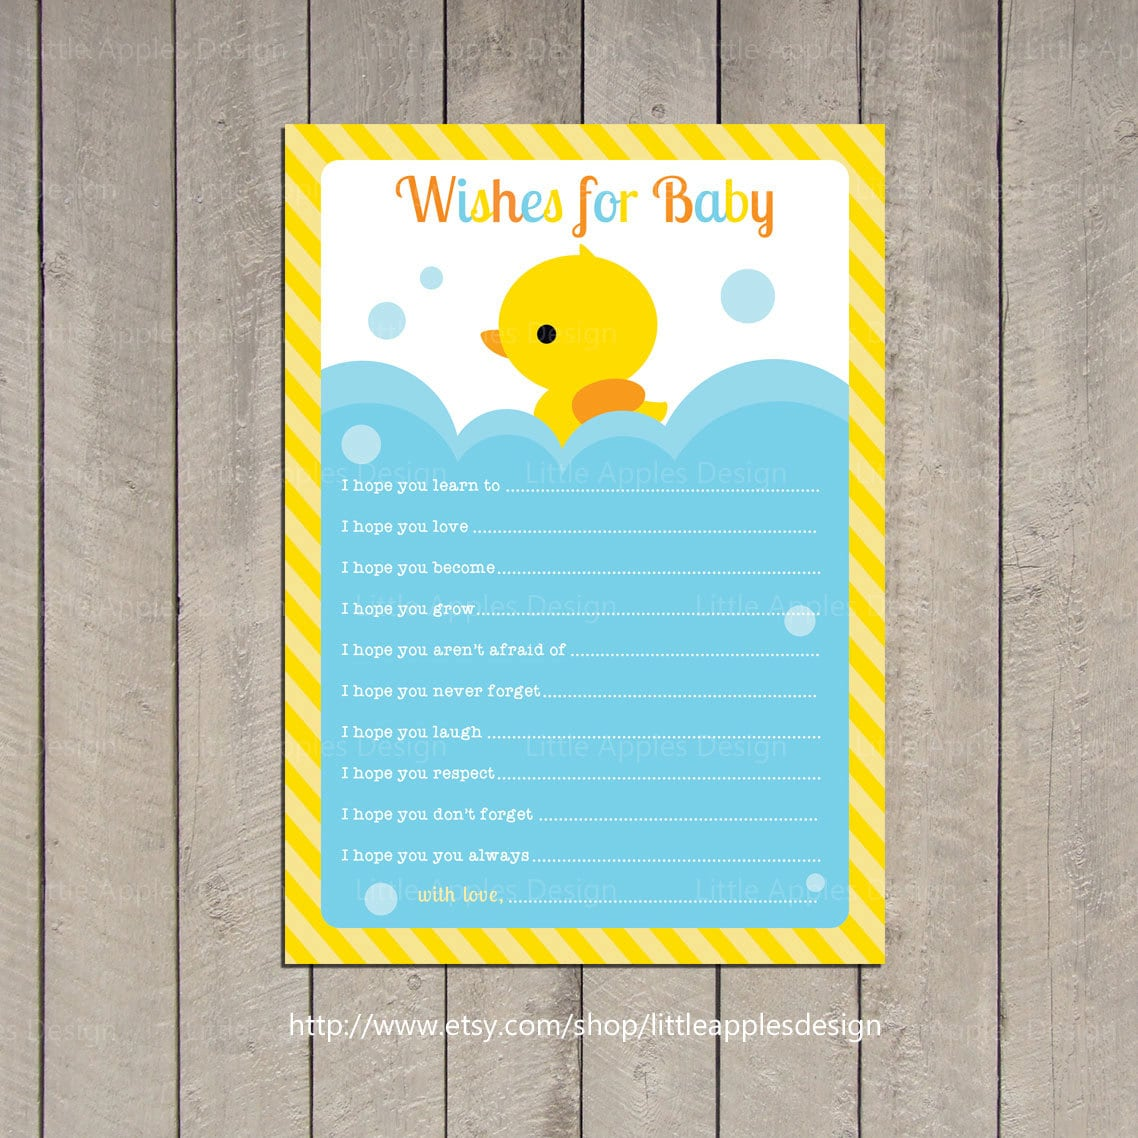 Wishes for Baby / Rubber Duck Wishes for Baby / Rubber Duck